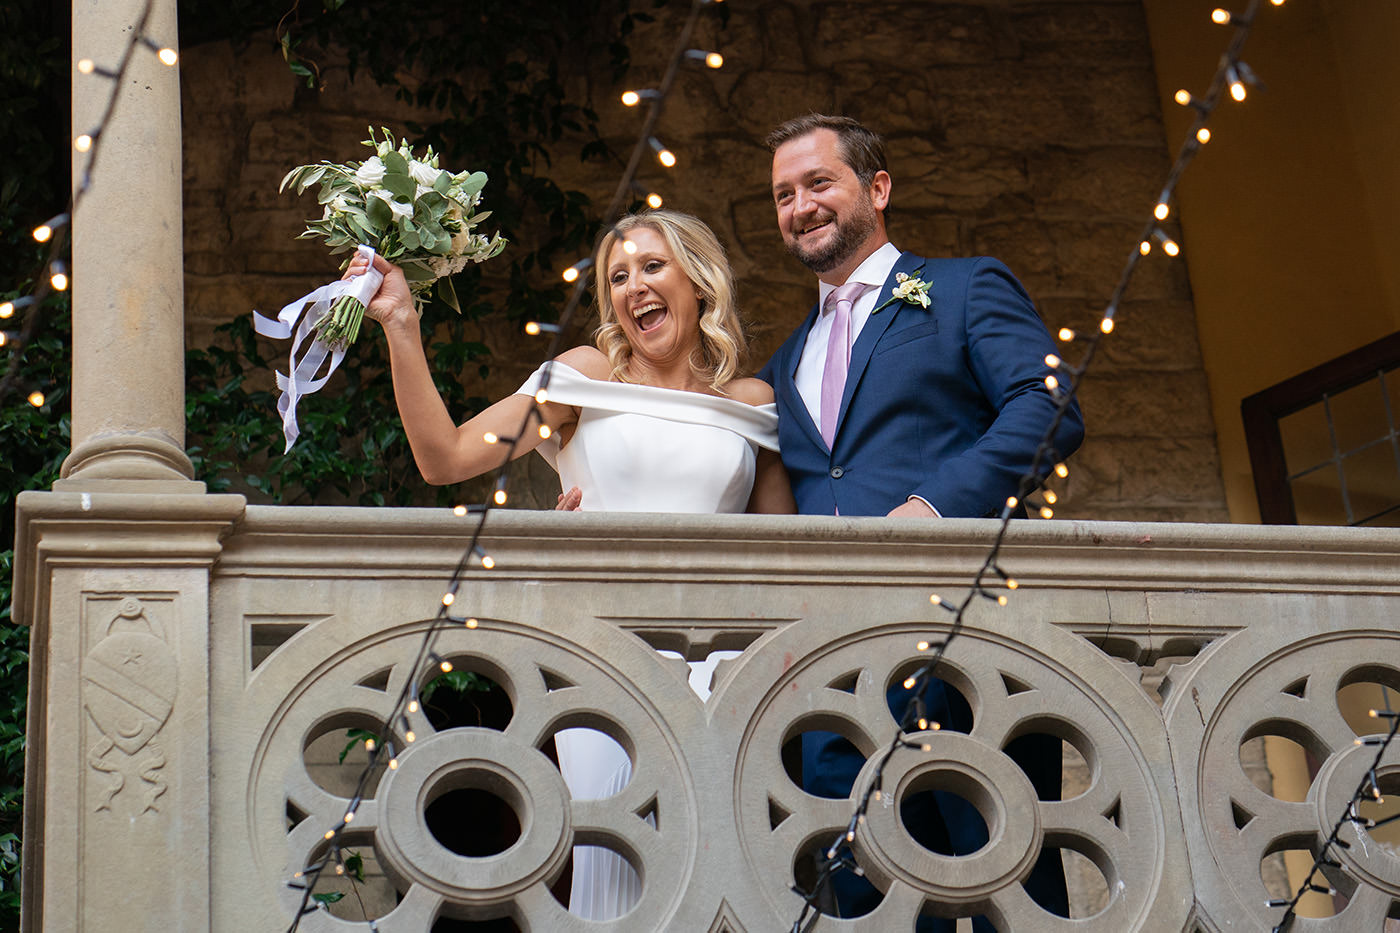 Tuscan Wedding Photo Shoots At Palagio Castle